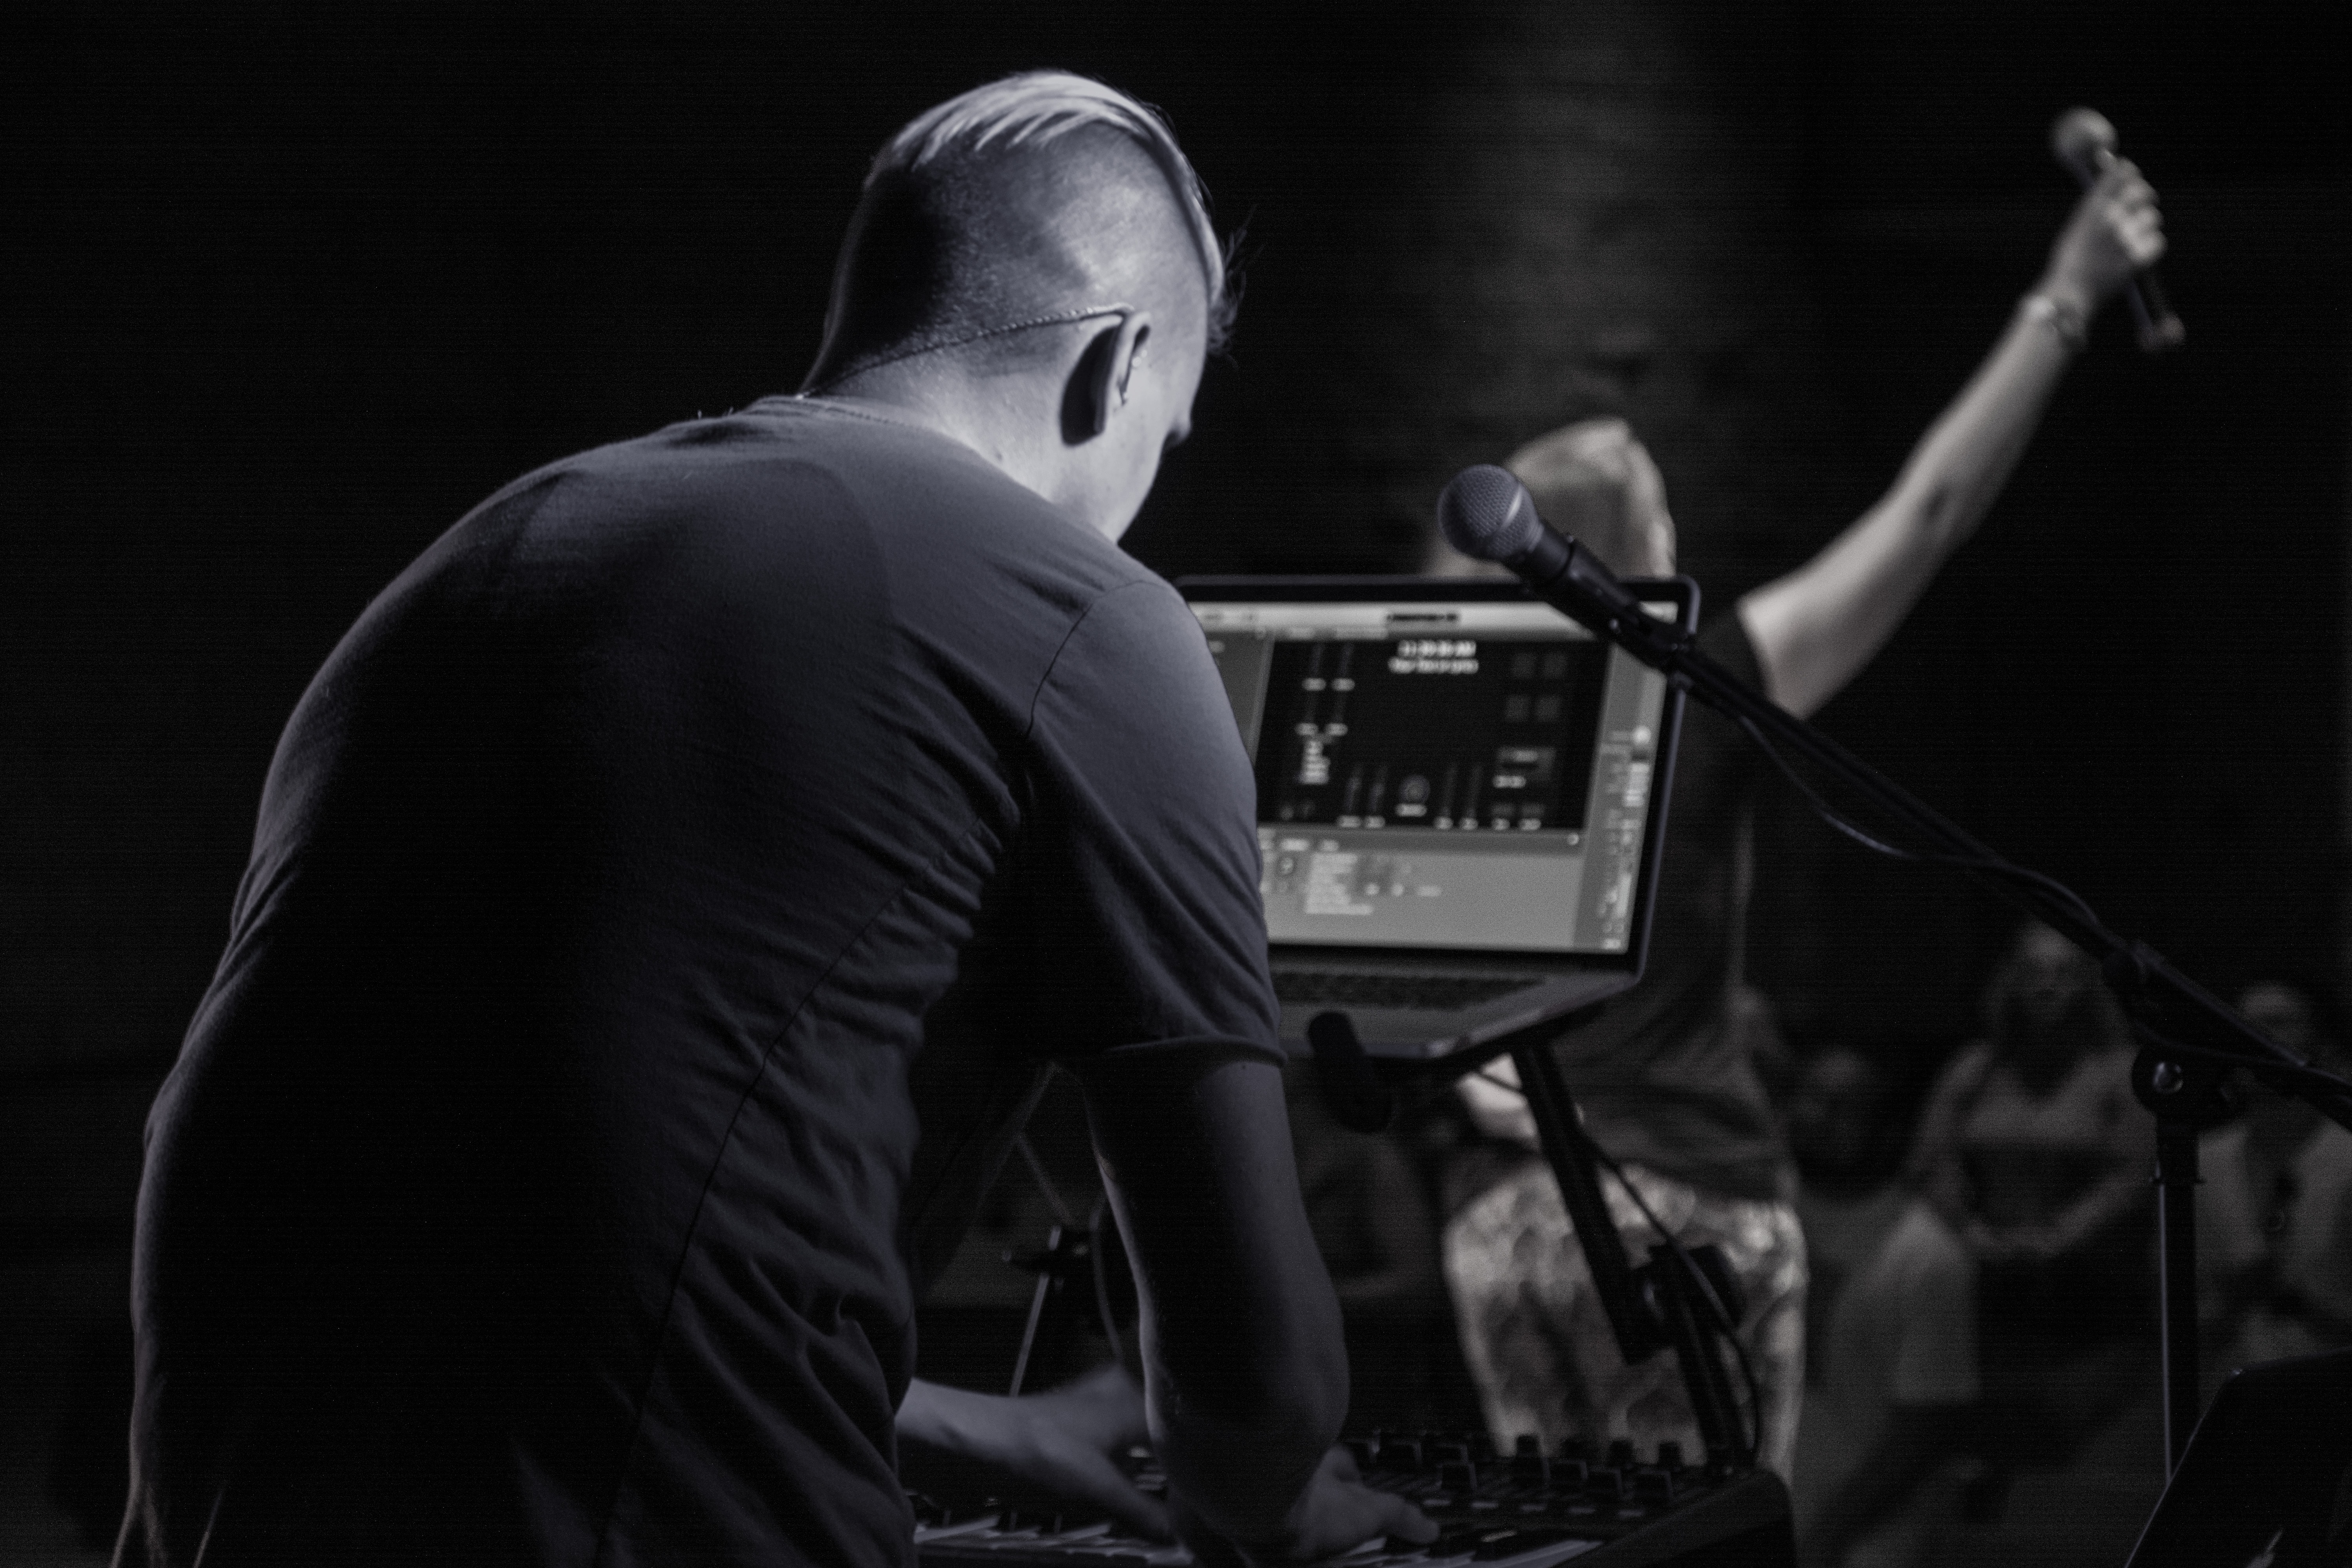 Electronic musicians perform a show using their laptop for a crowd